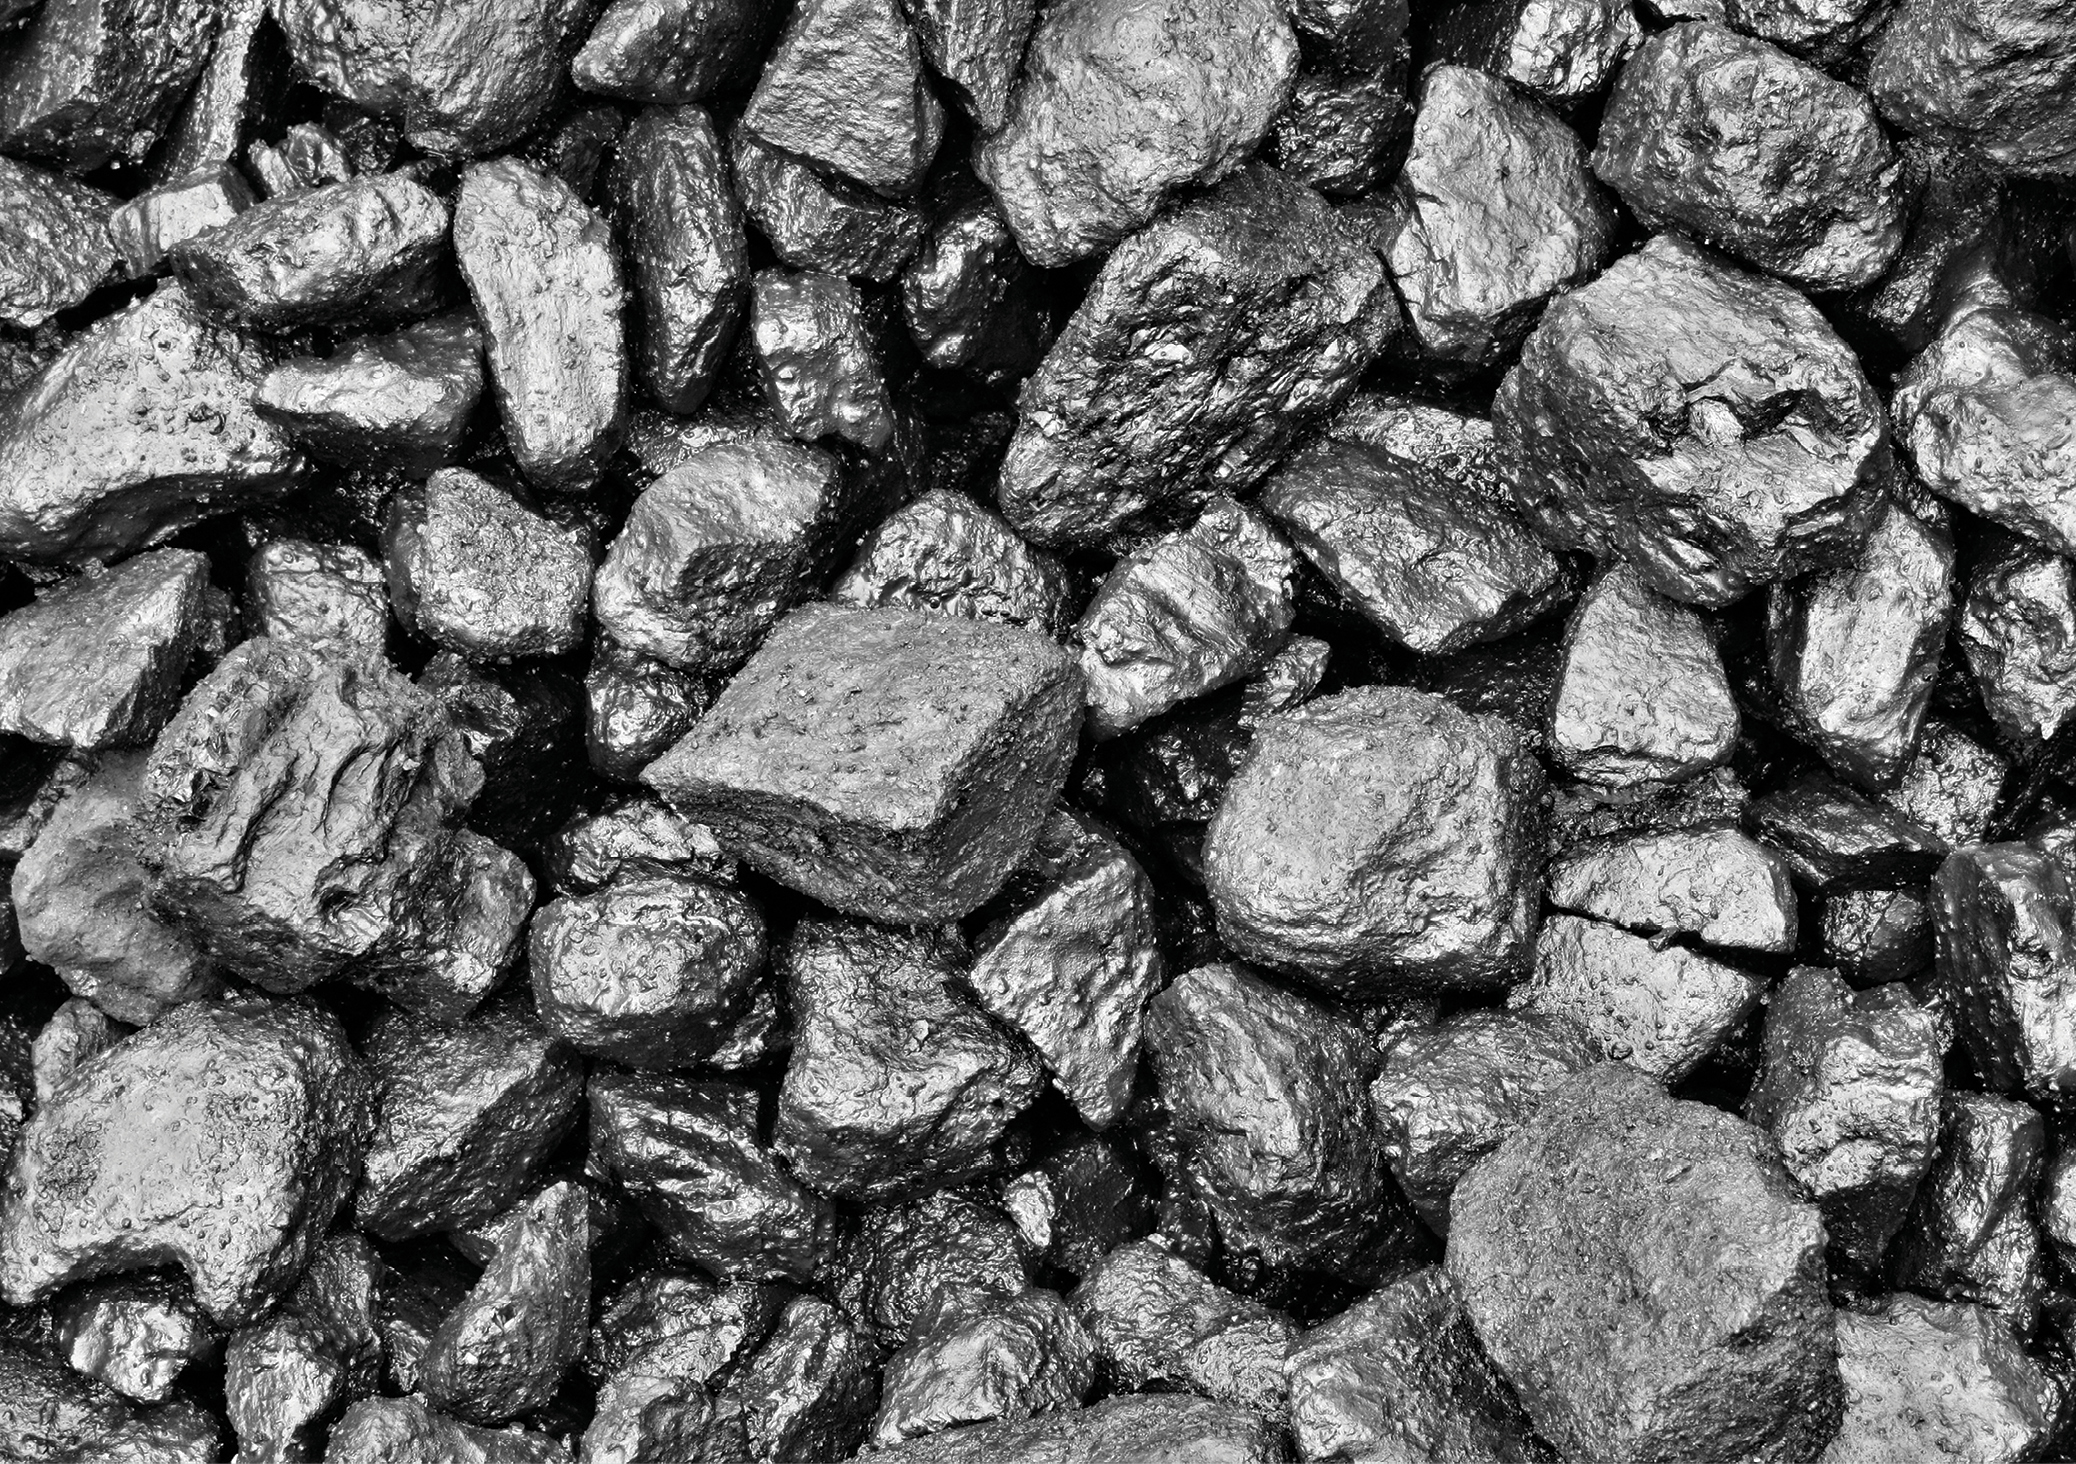 American Resources (AREC) stock price rises after rare earth element mining success